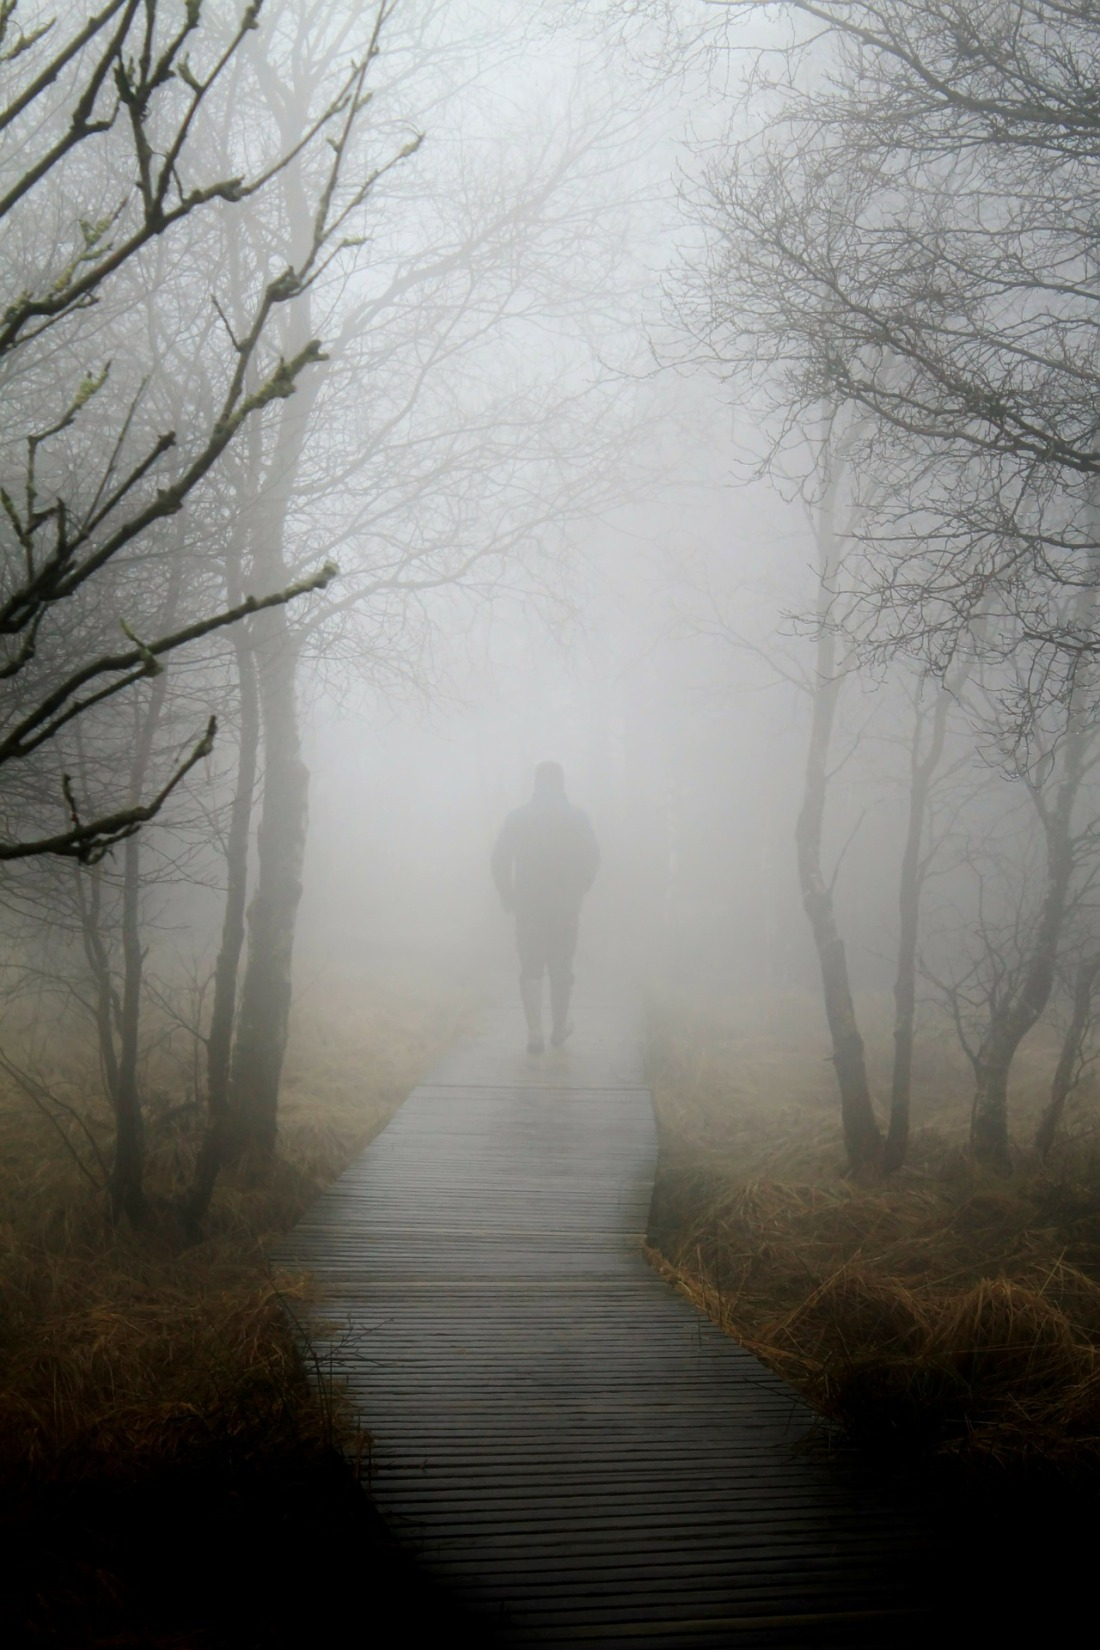 Mysterious man walking along boardwalk in the mist and fog between trees